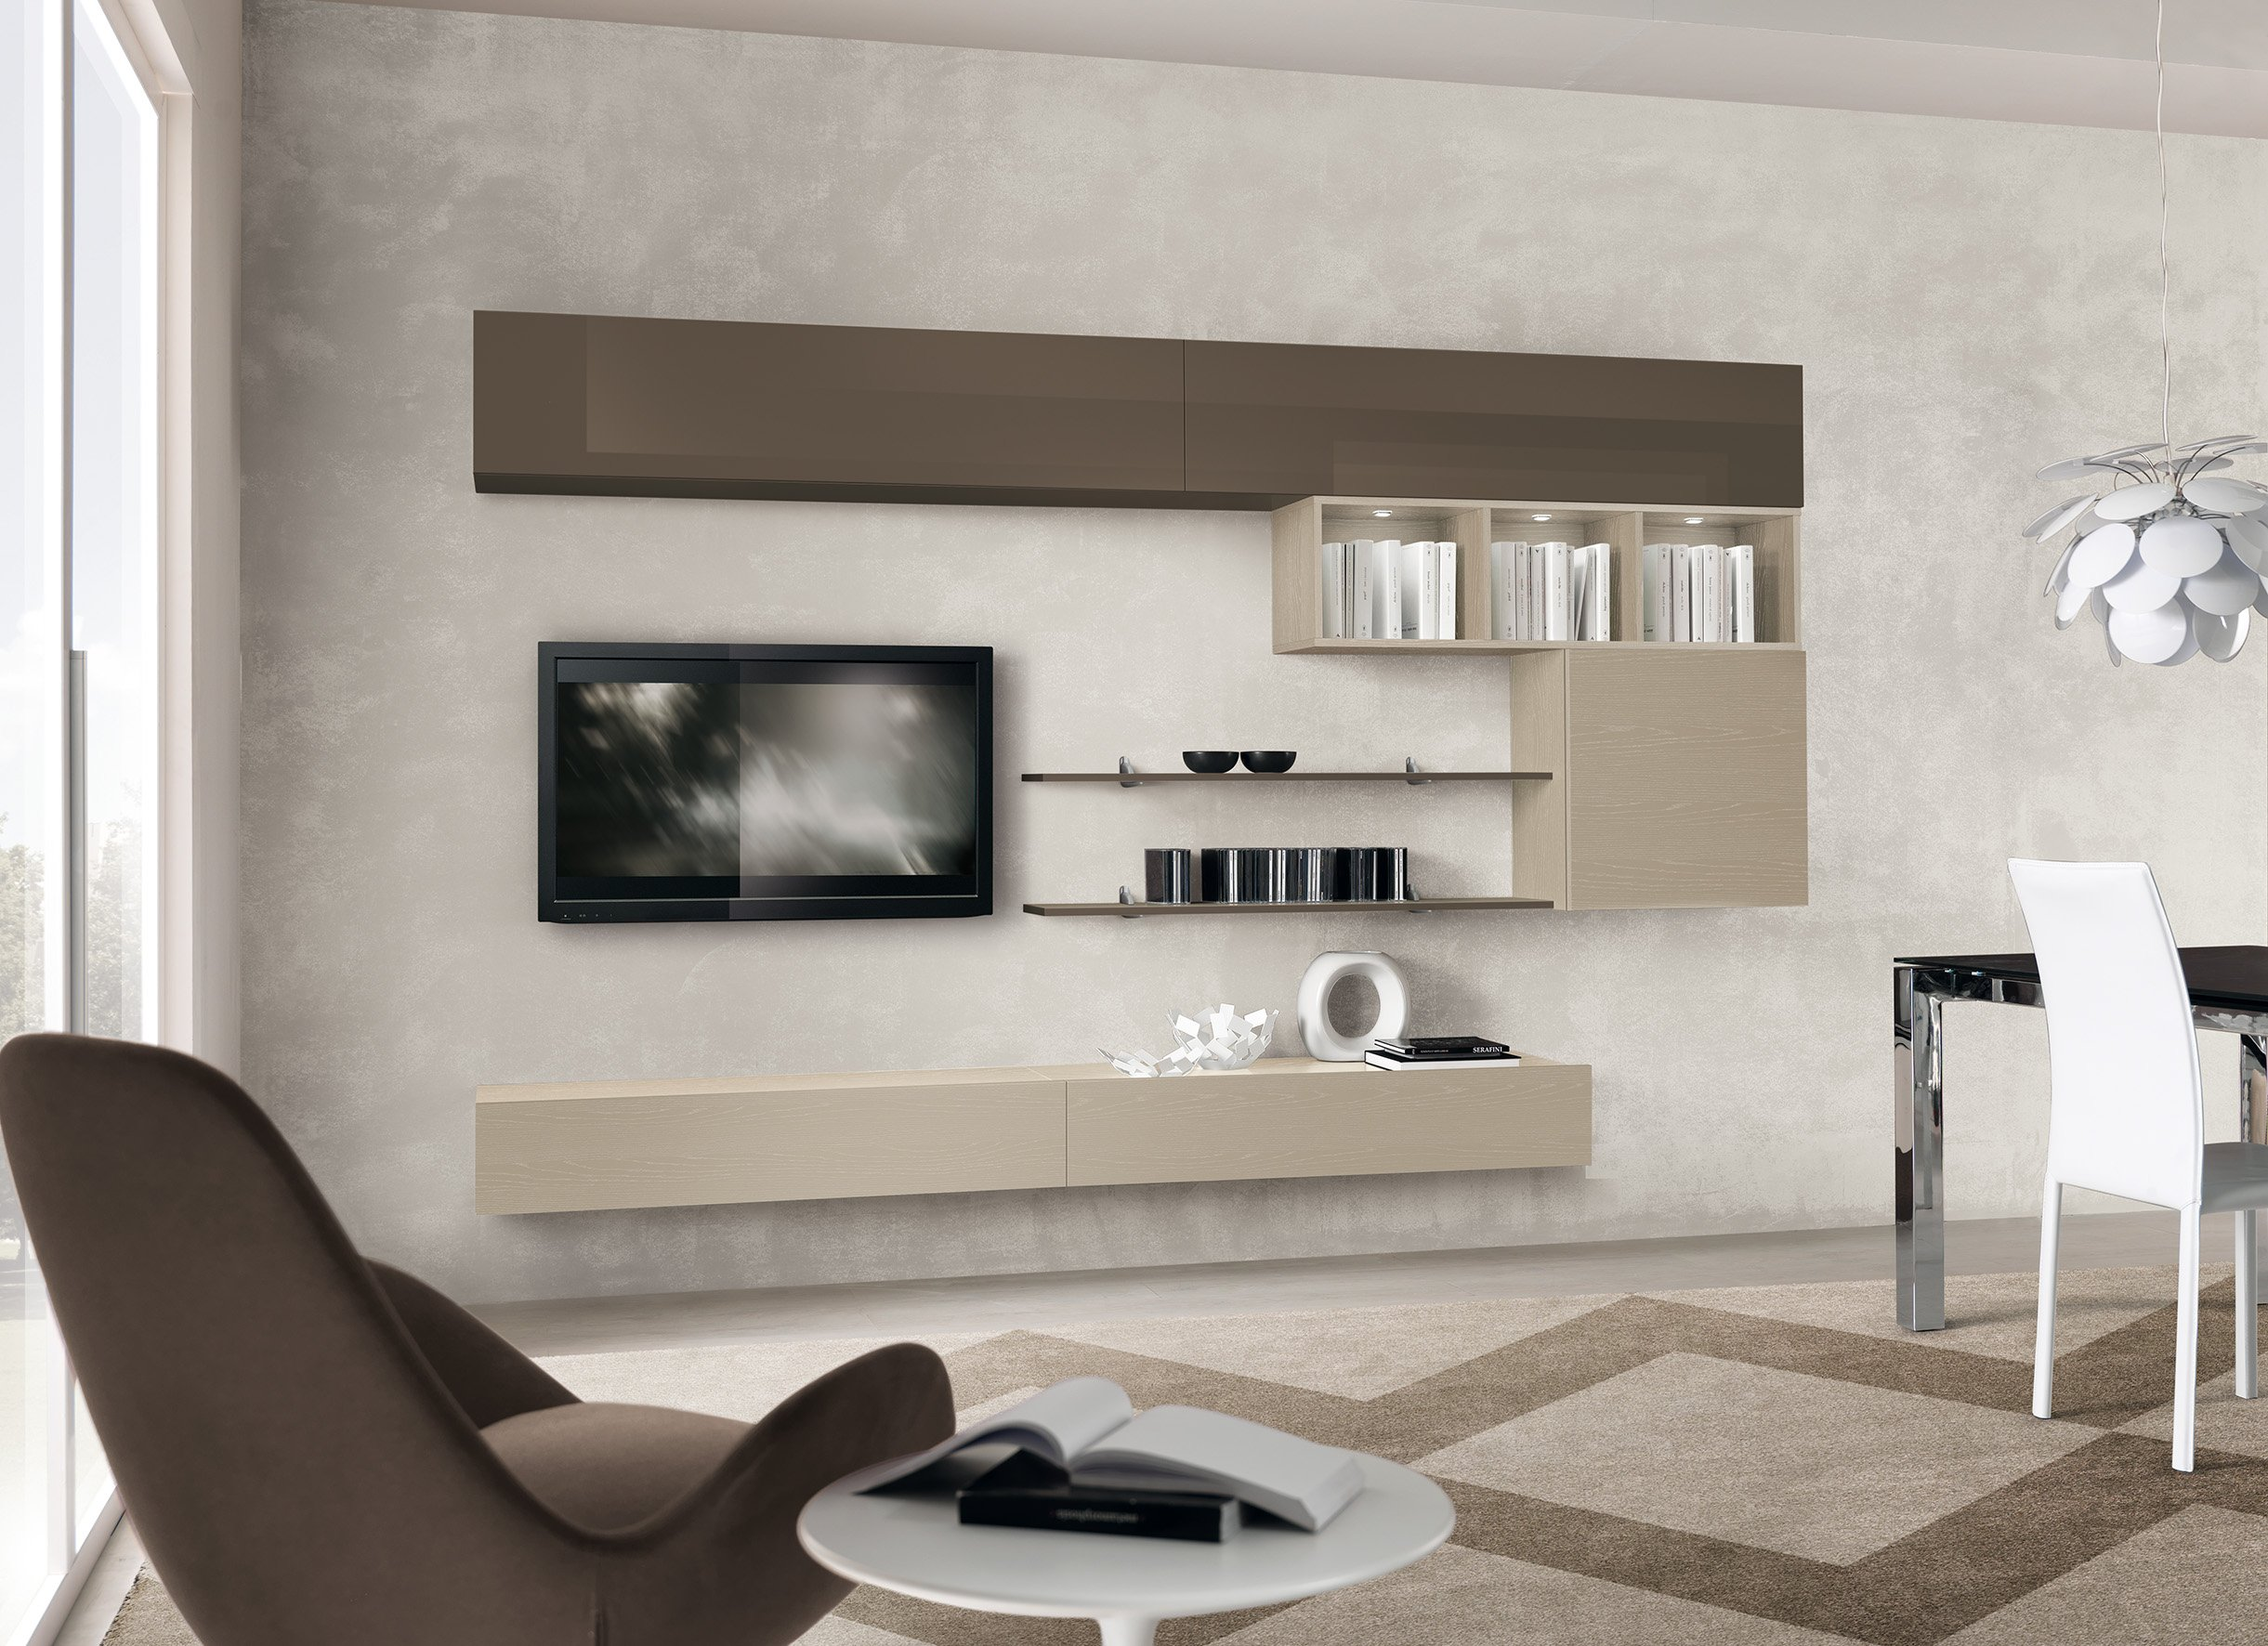 TV unit with display shelving